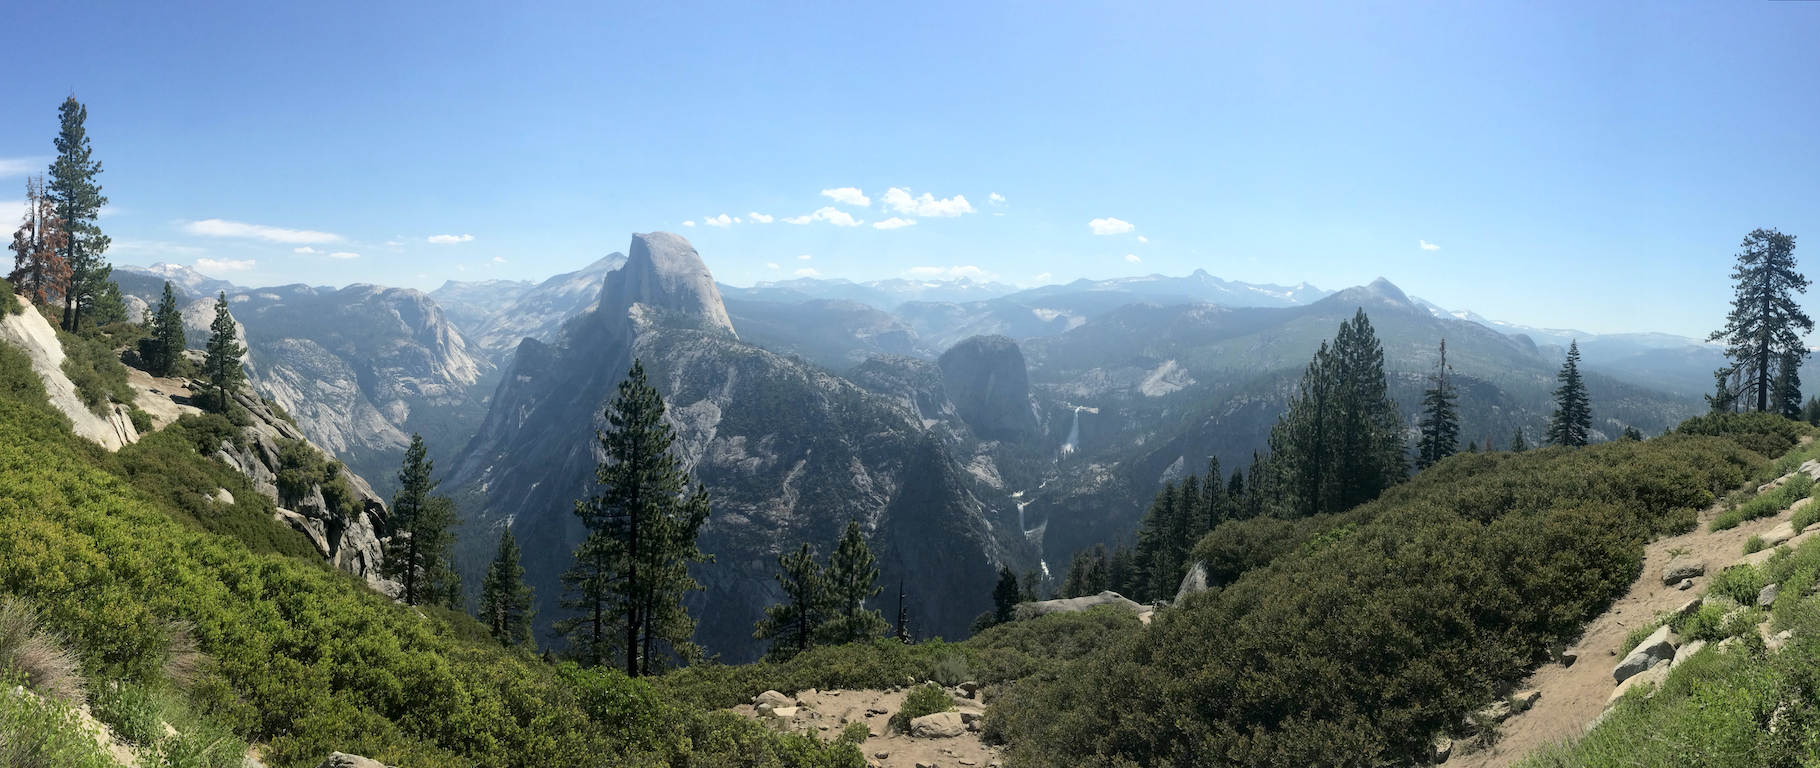 Eastern Yosemite Valley from Glacier Point